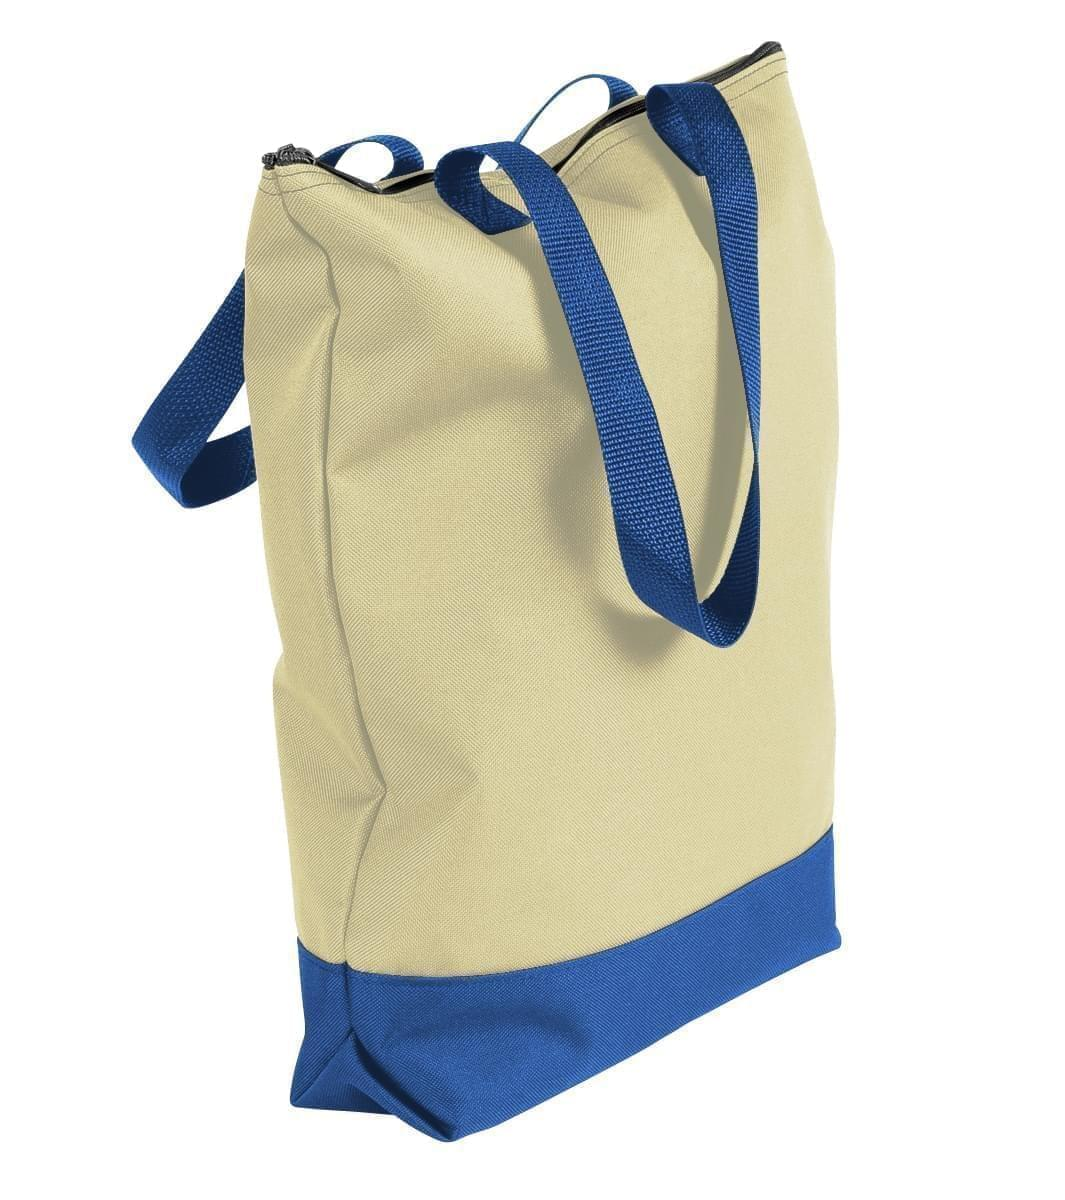 USA Made Canvas Portfolio Tote Bags, Natural-Royal Blue, 1AAMX1UAK3